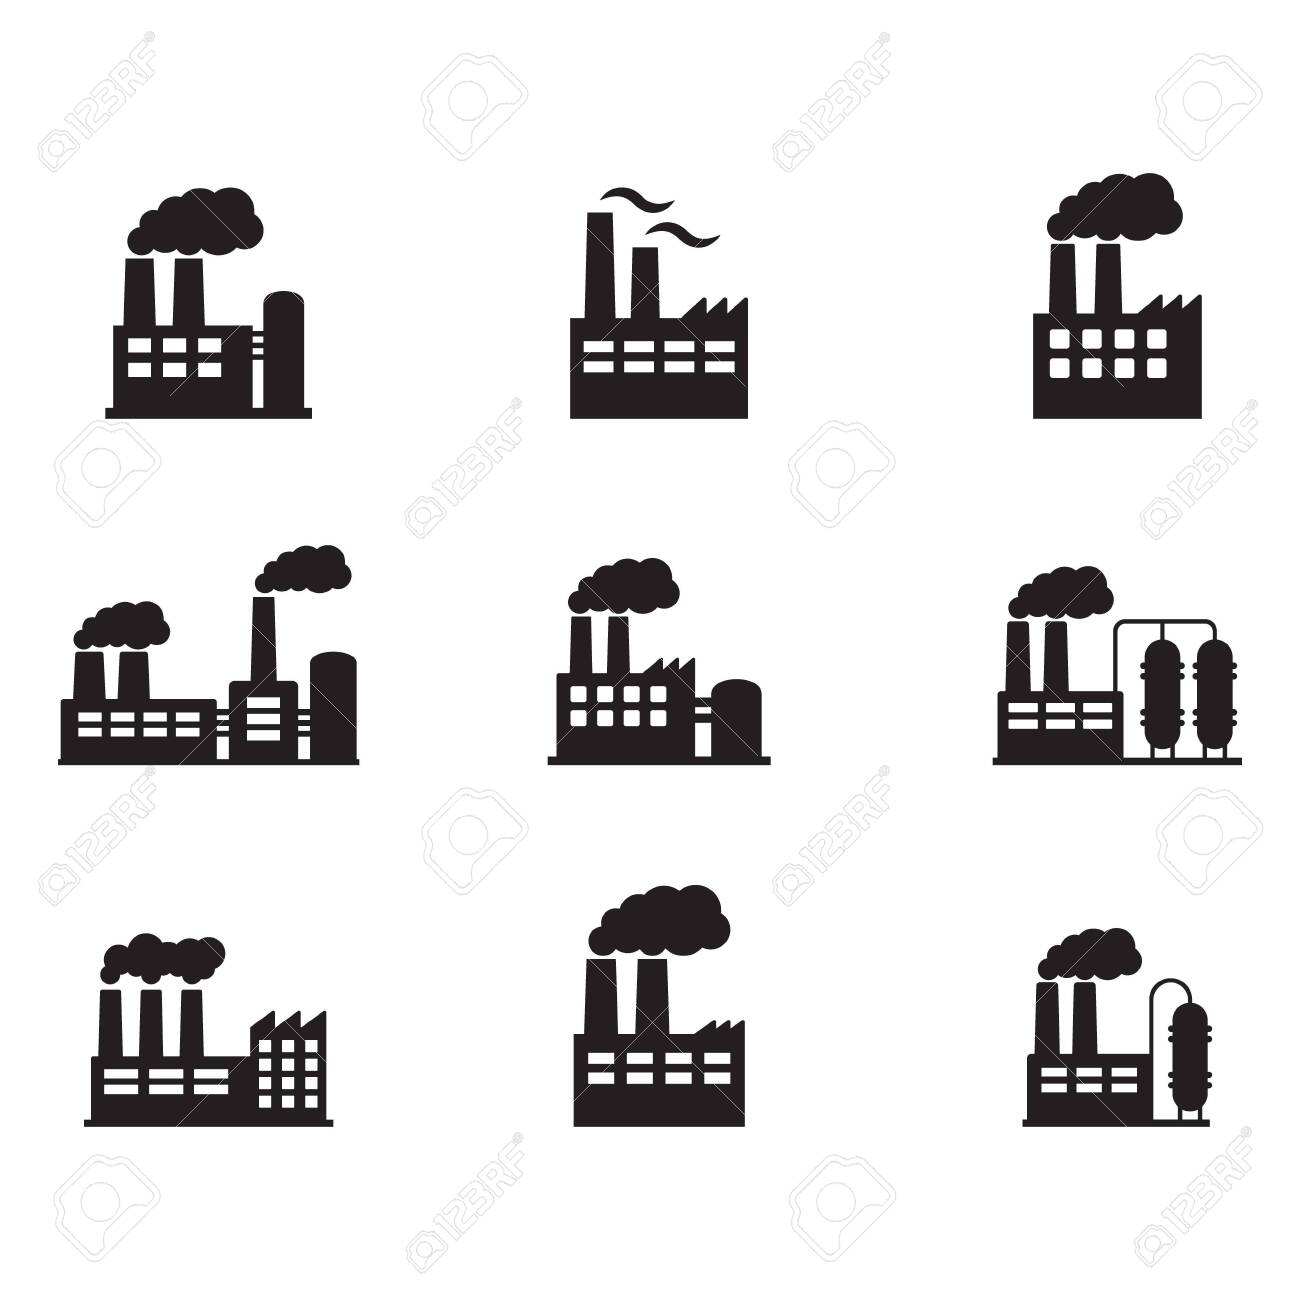 Factory icon. Vector illustration of industry icon. - 148196559